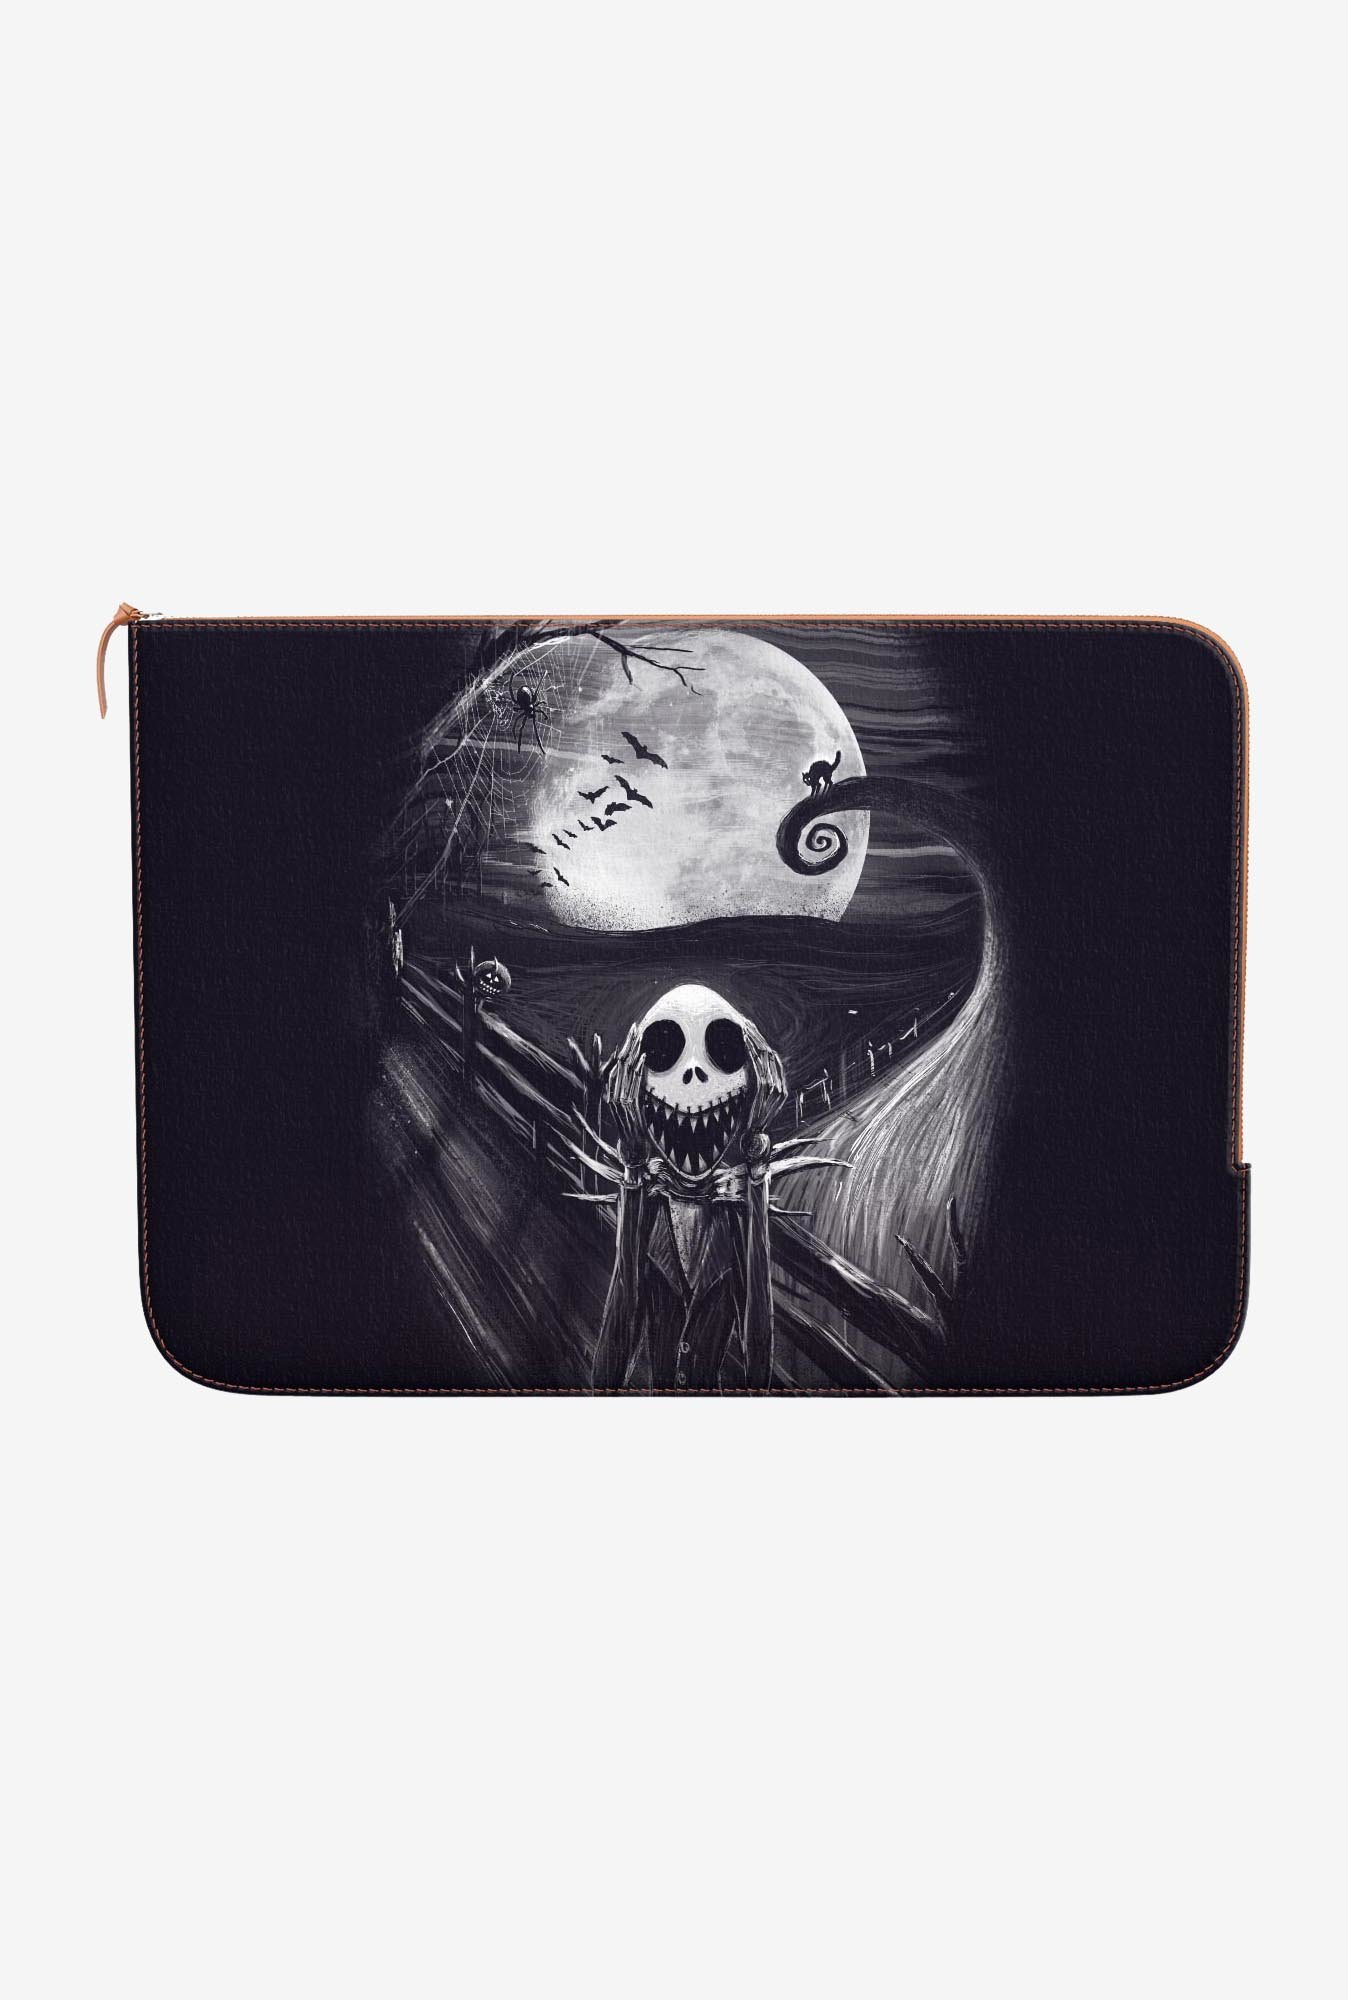 DailyObjects Scream Before MacBook Air 11 Zippered Sleeve